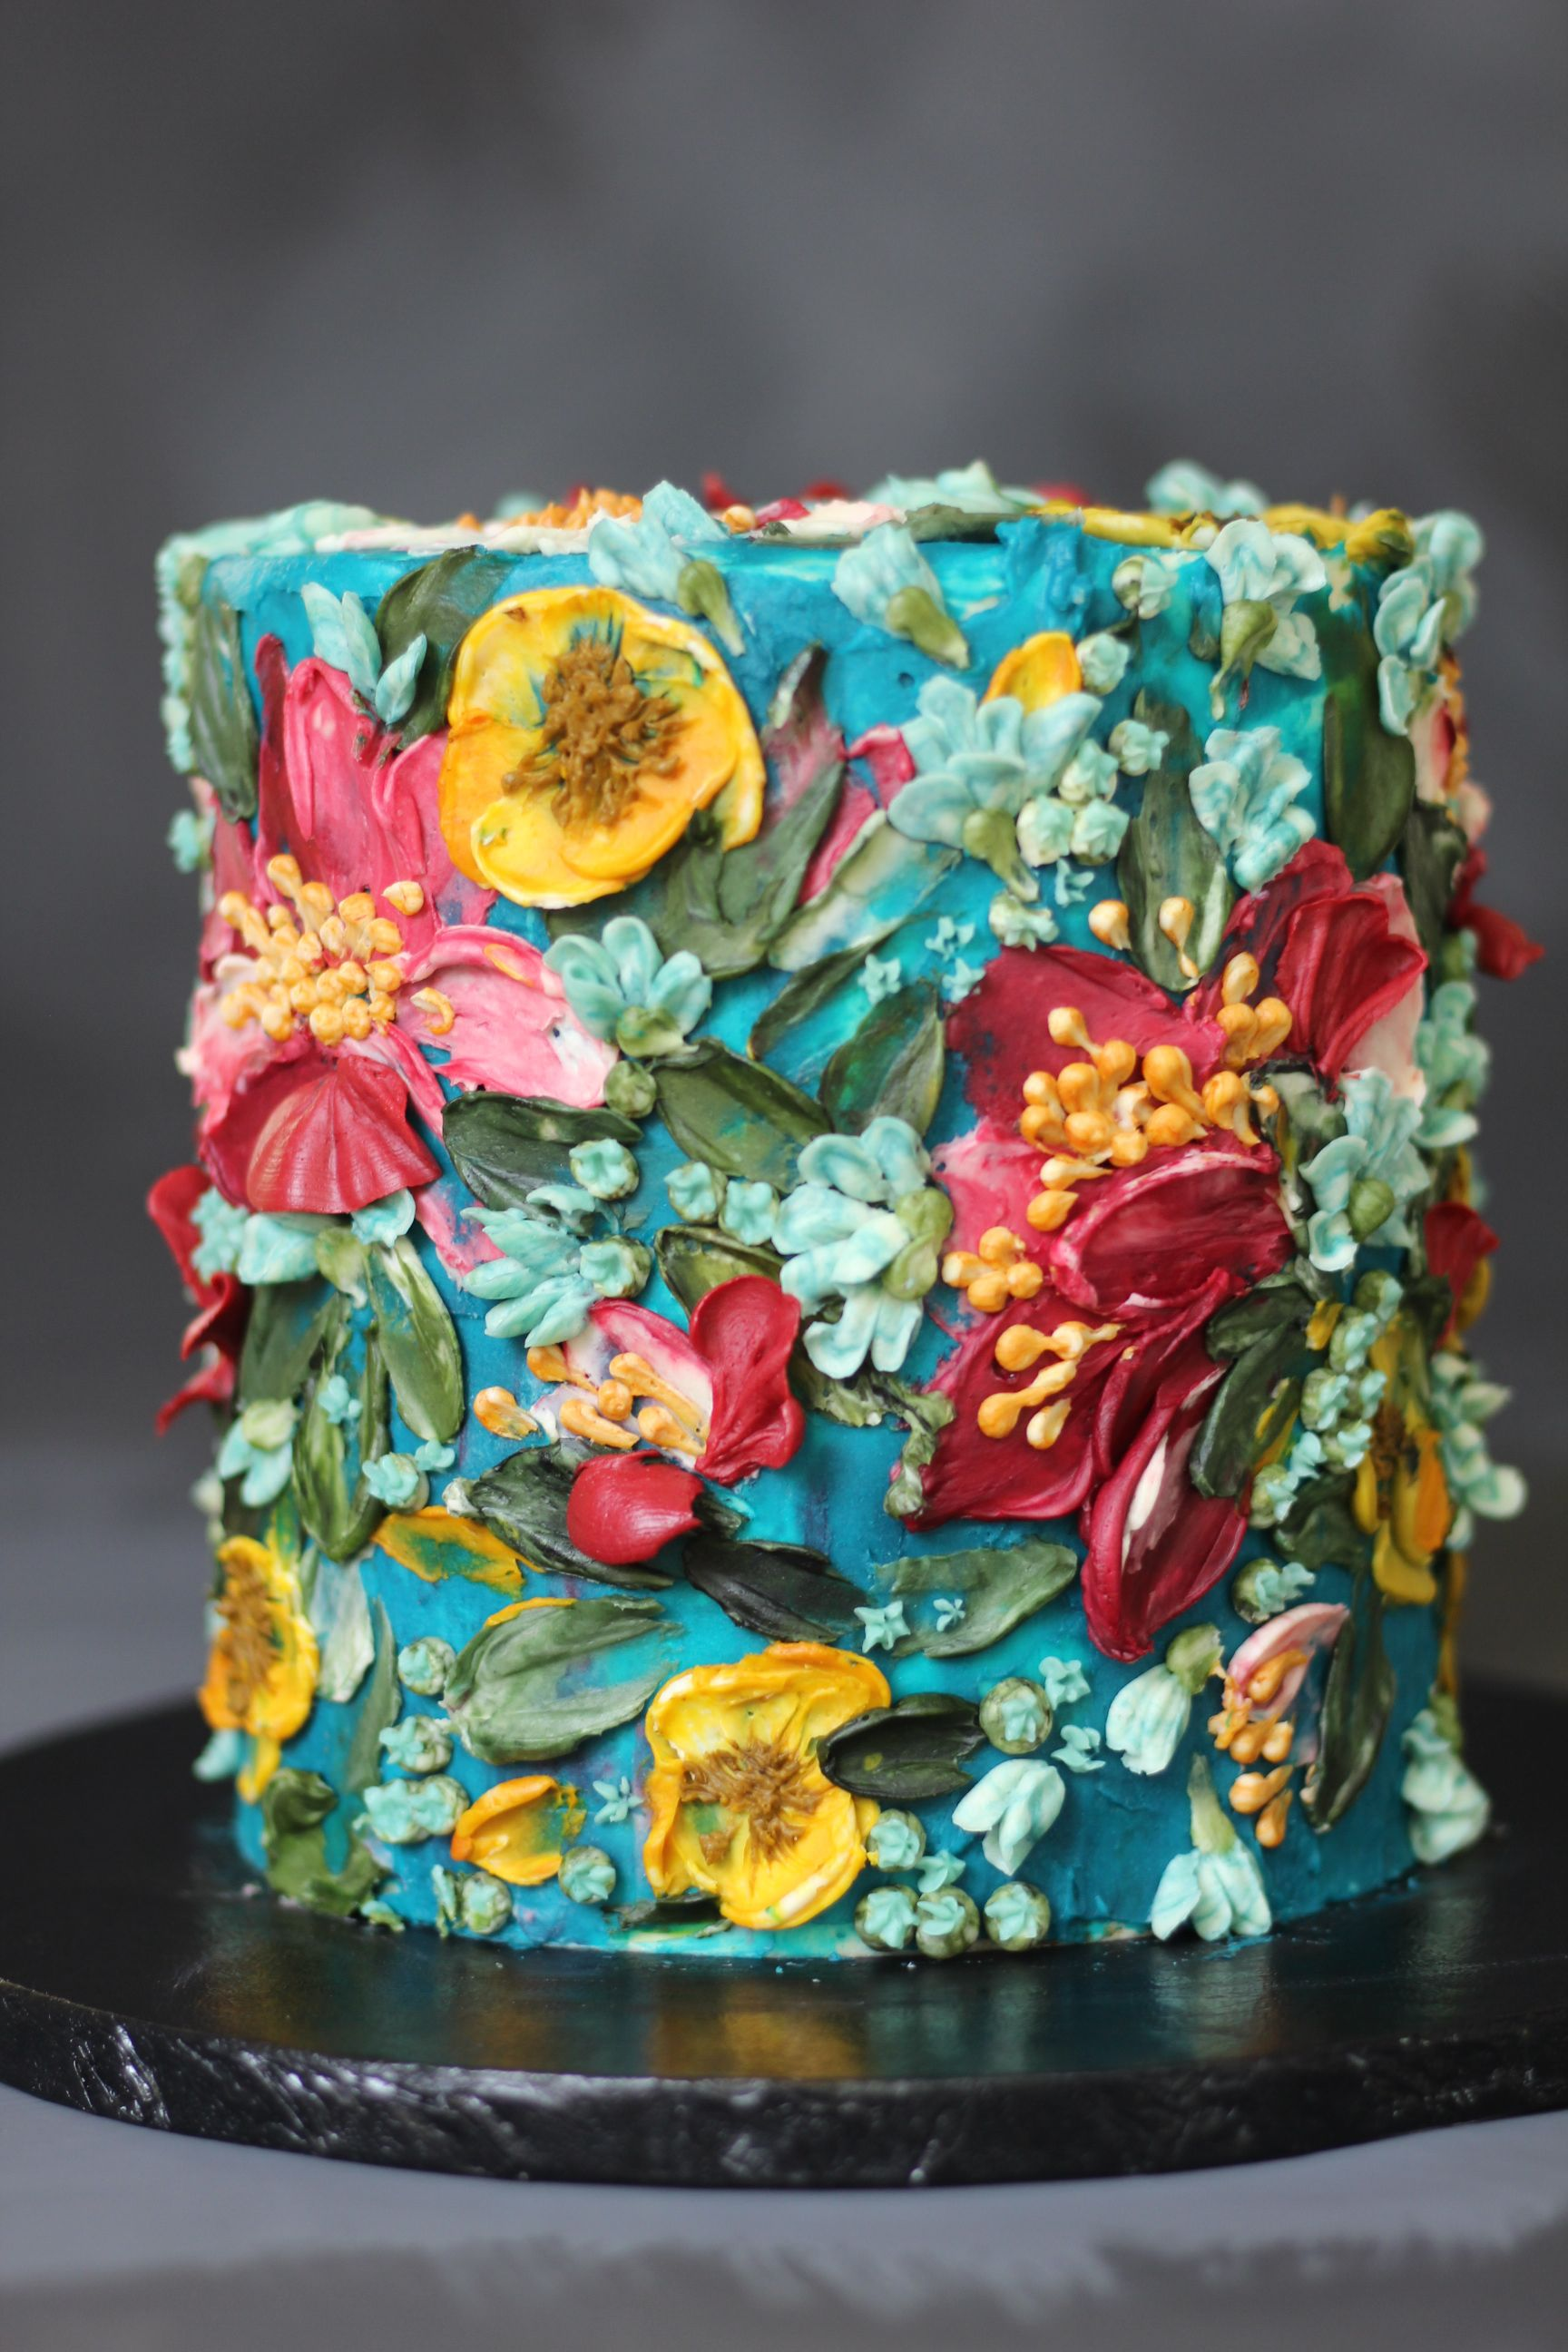 Painted buttercream flower cake by Emma Page Buttercream Cakes London #celebrationcakes